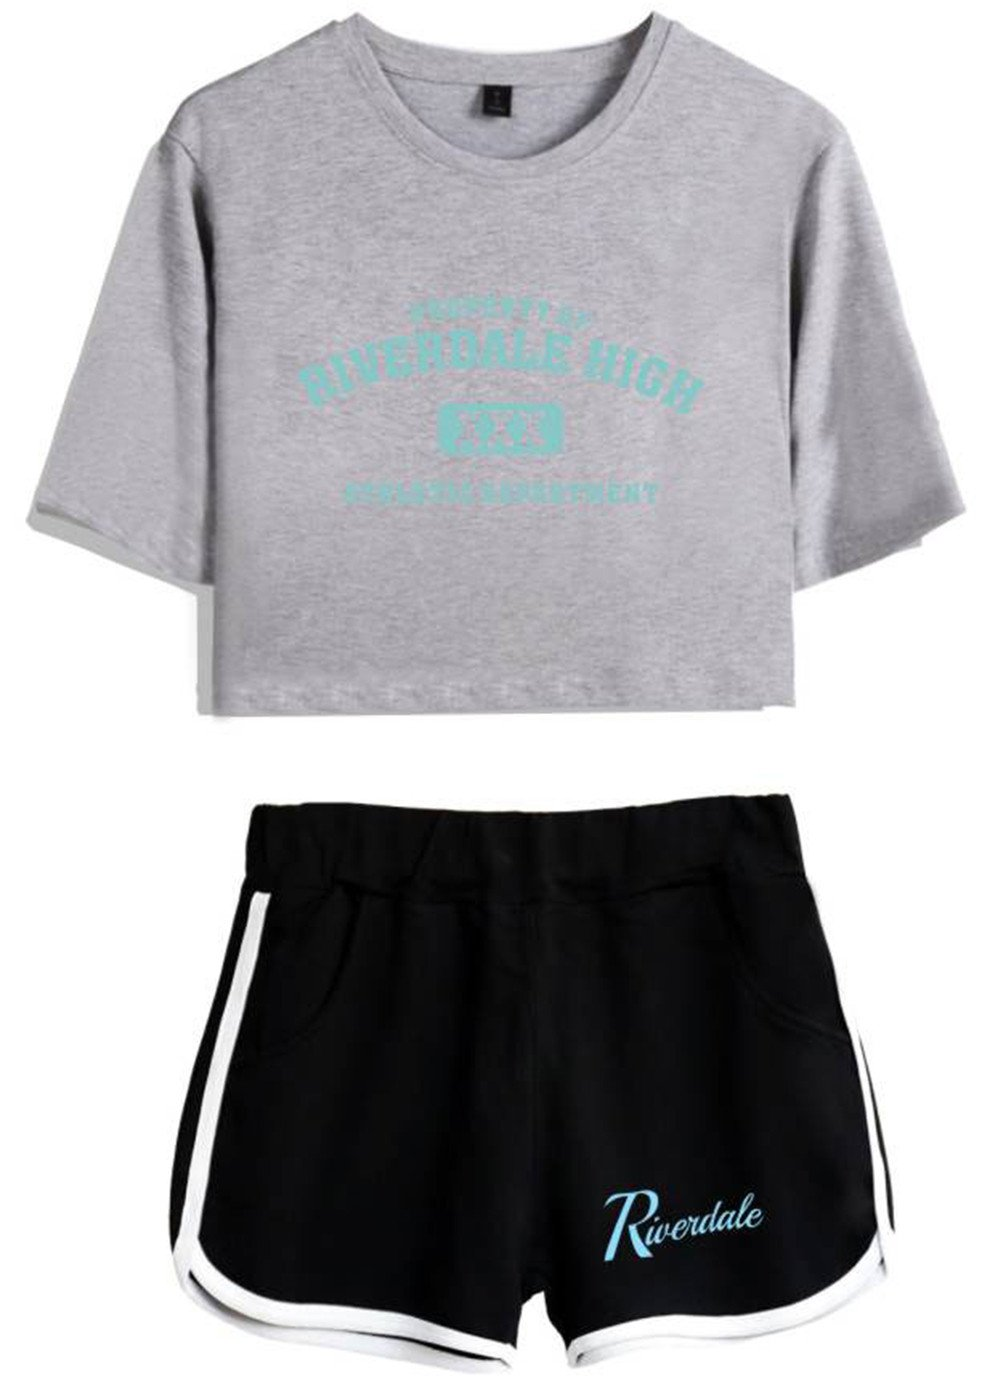 SERAPHY Riverdale Crop Top T-Shirts and Shorts Suit for Girls and Women 5757 Grey-Black L